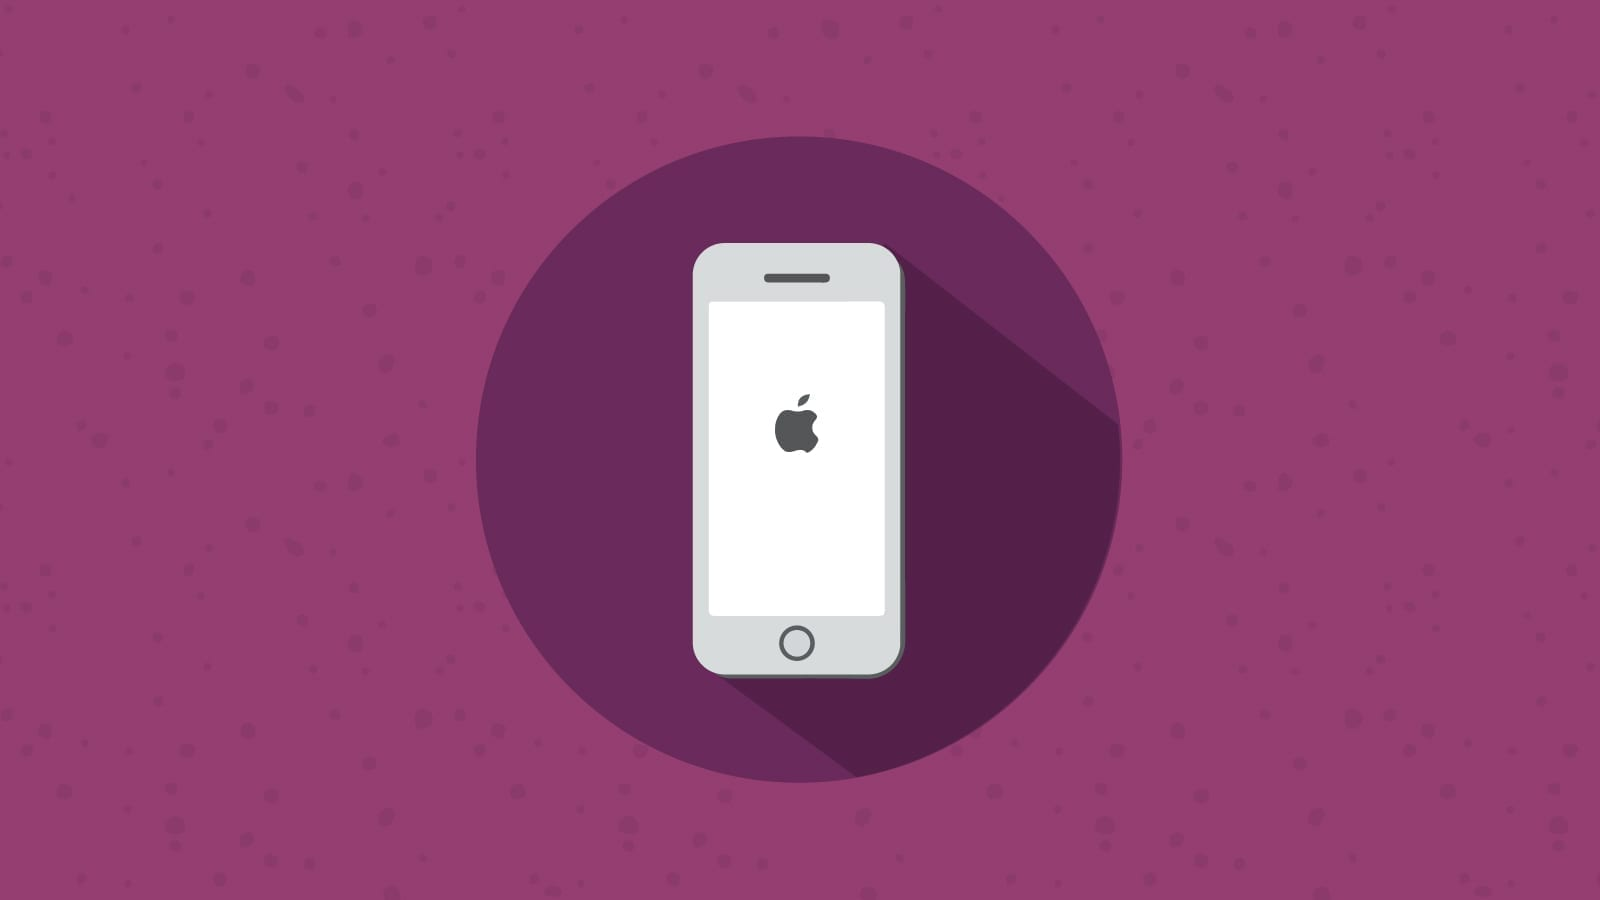 Develop emails for iPhones